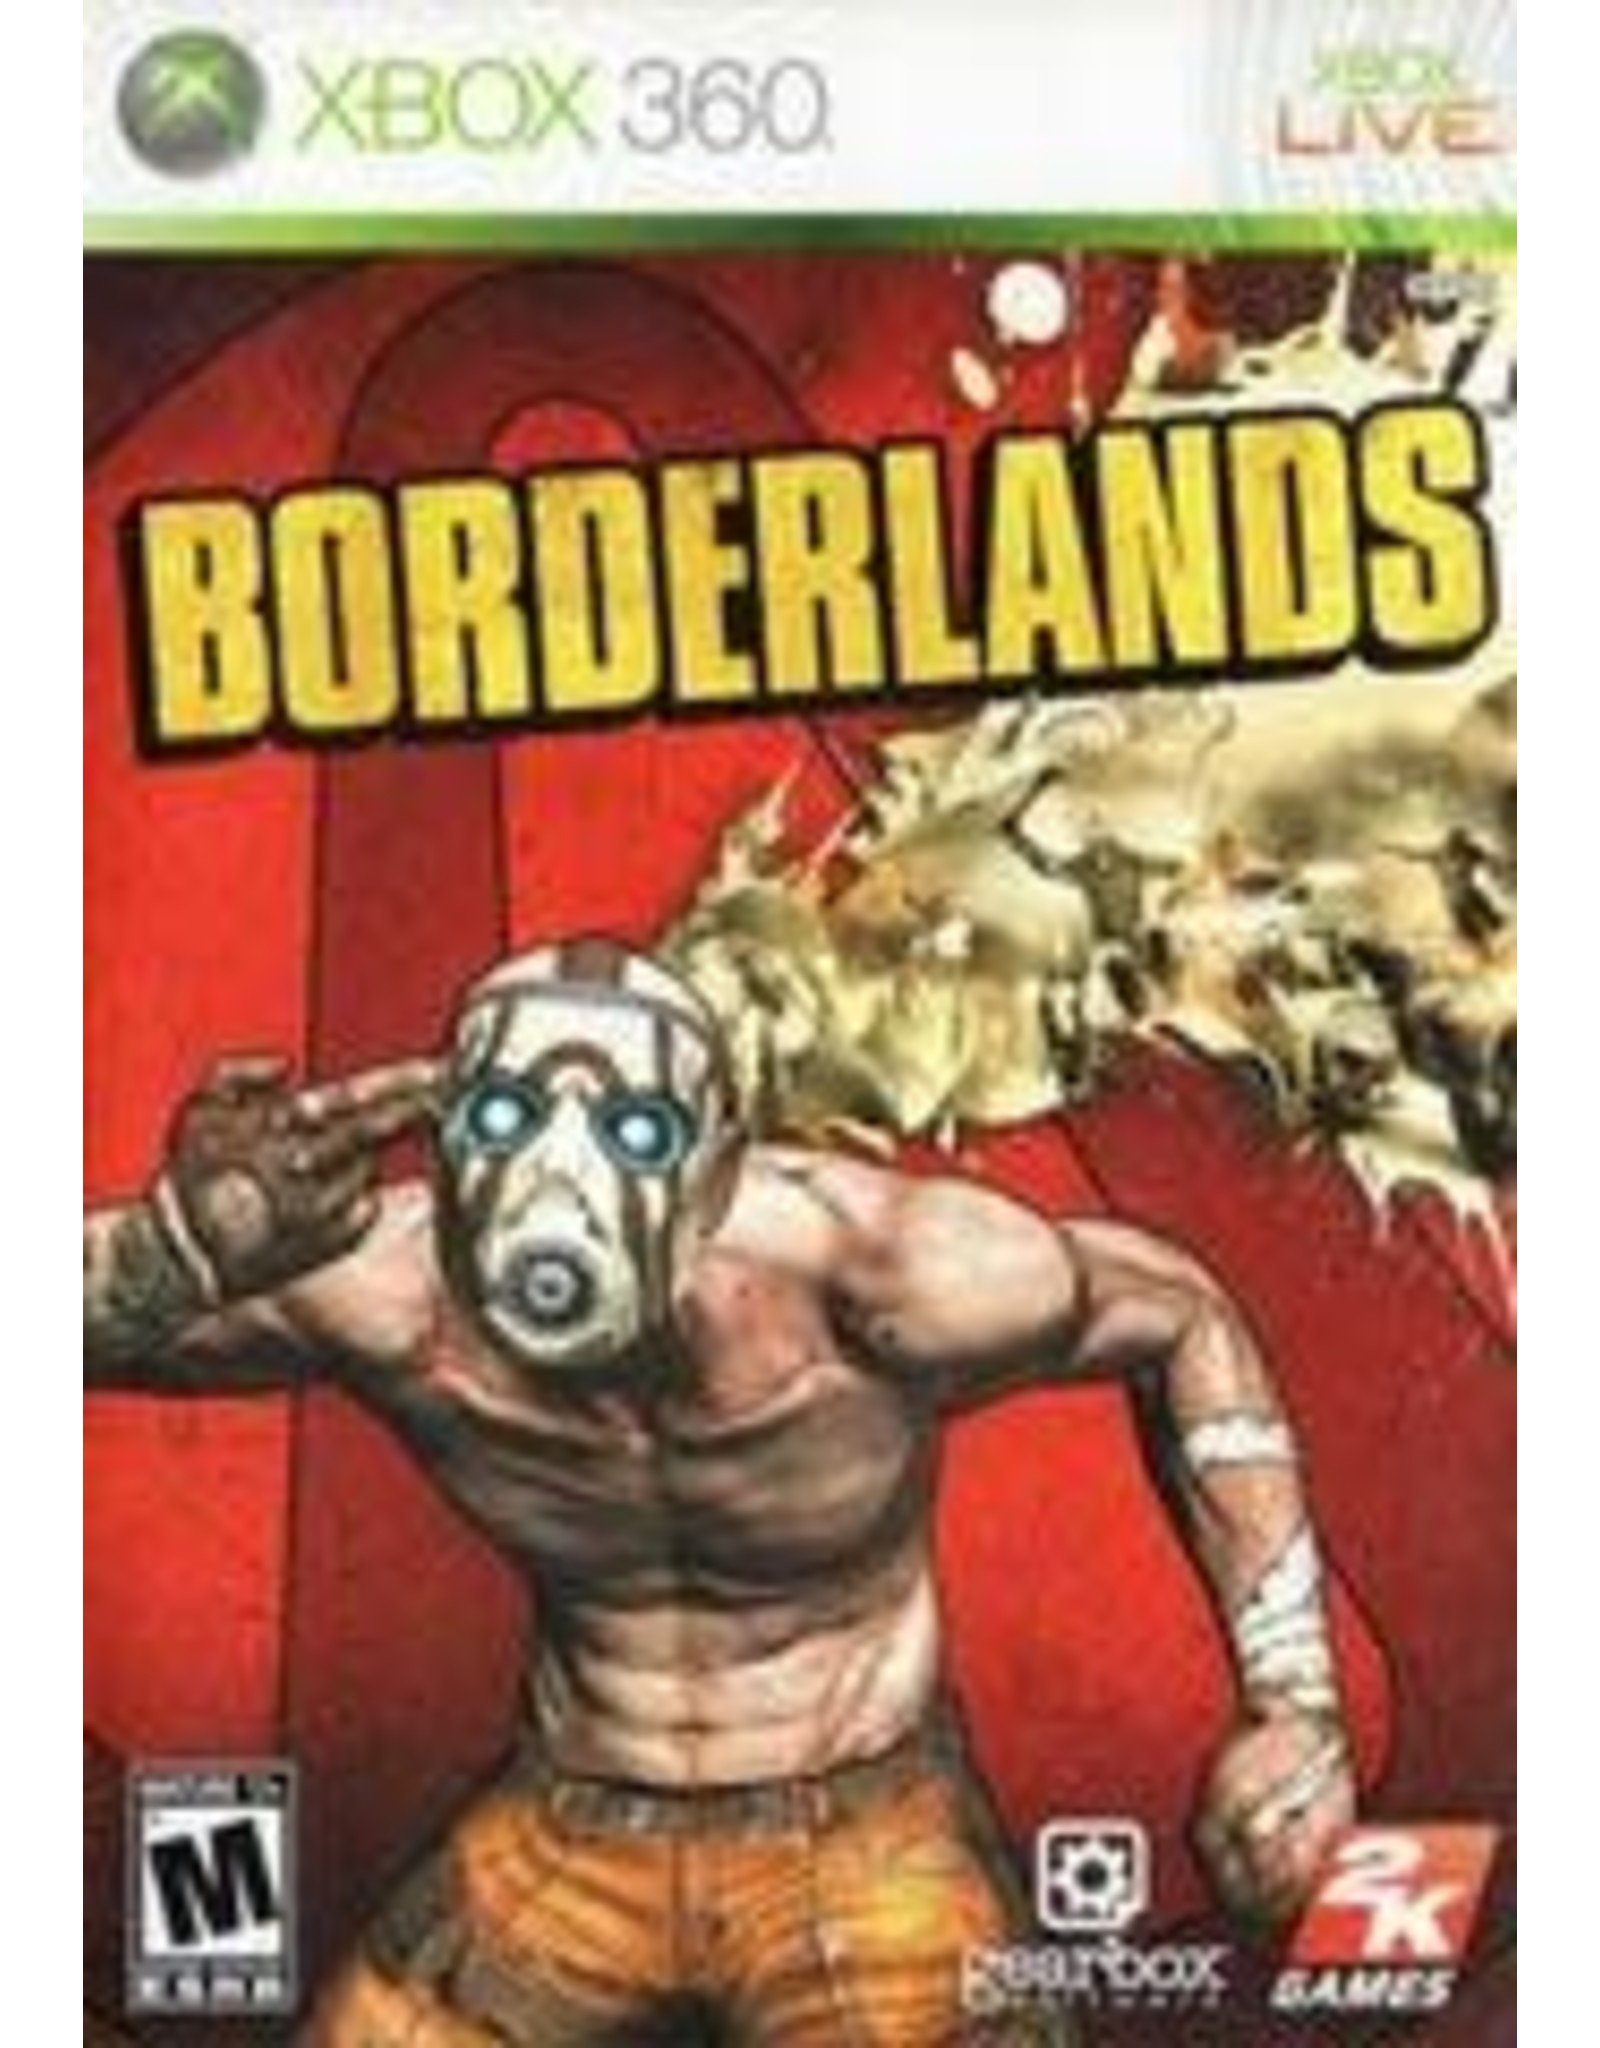 Xbox 360 Borderlands (CiB)